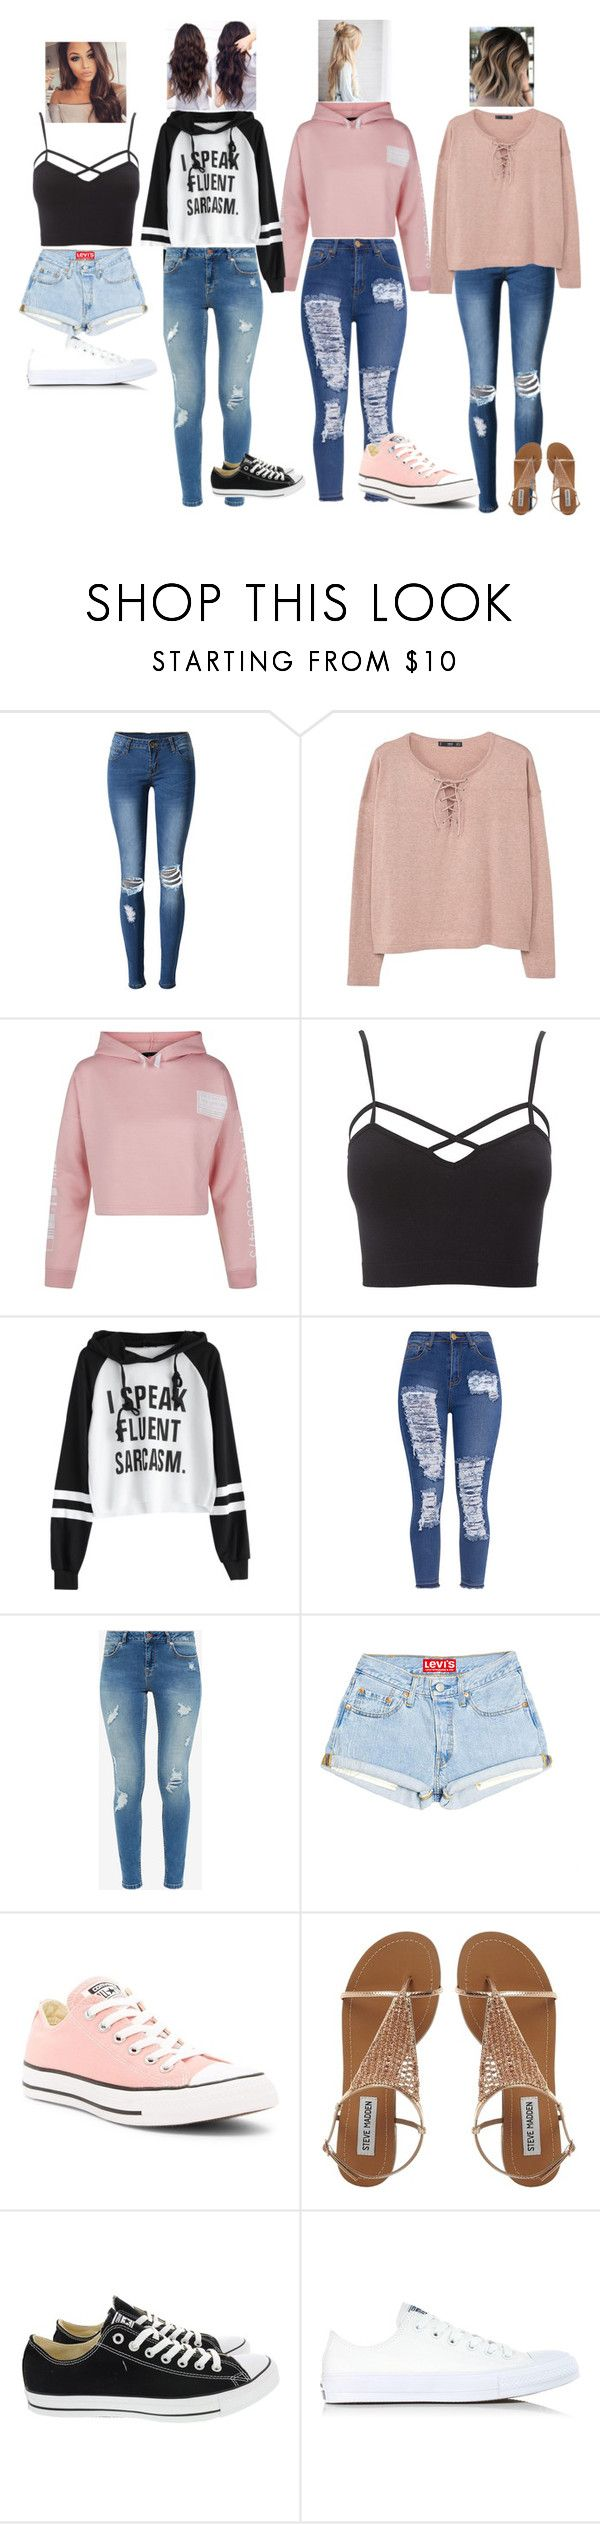 """4 random outfits"" by totallytay on Polyvore featuring WithChic, MANGO, New Look, Charlotte Russe, Ted Baker, Converse and plus size clothing"